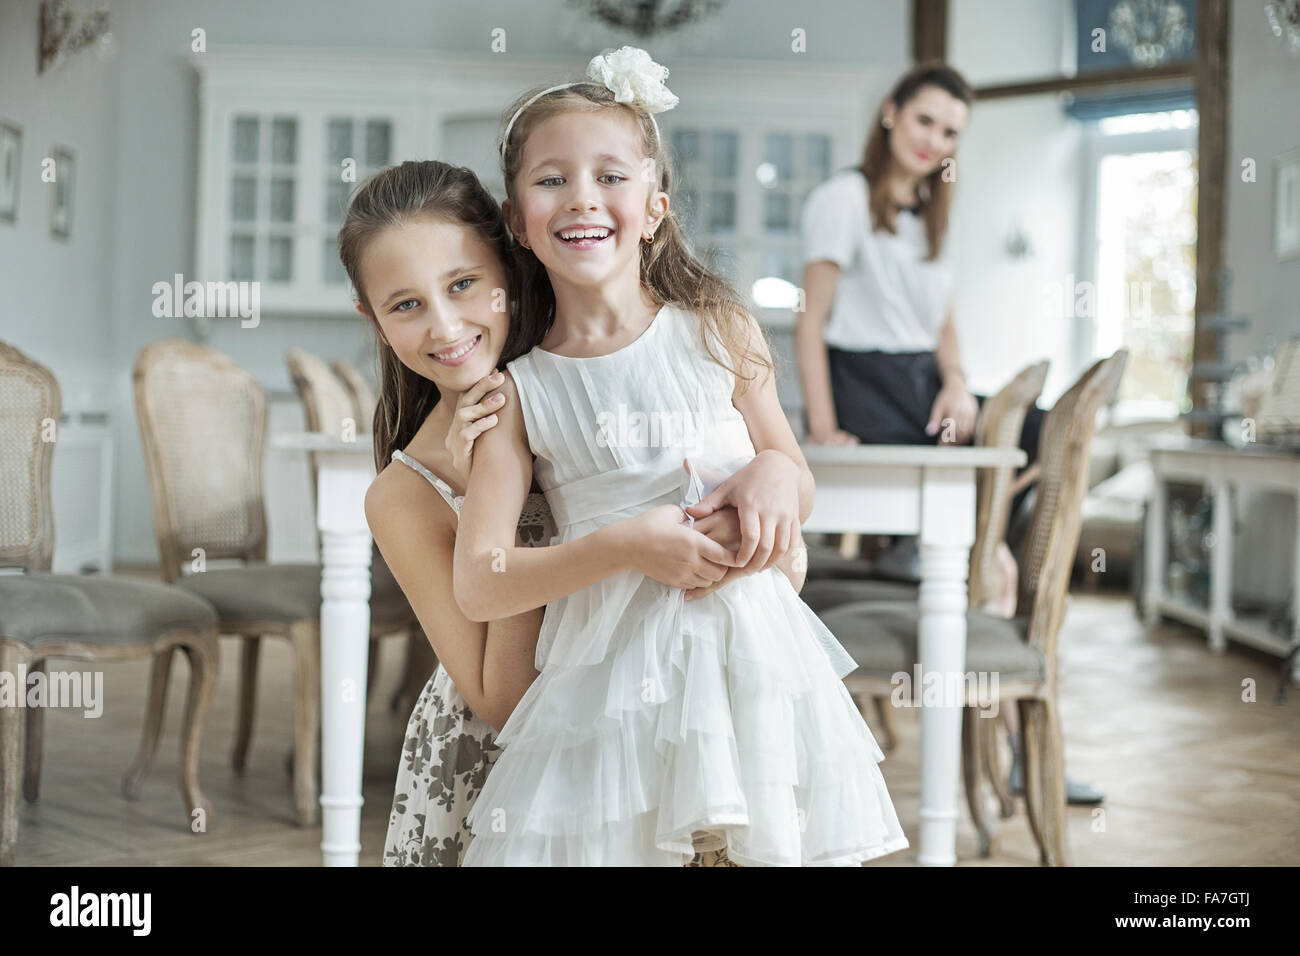 Two cheerful daughters posing with pretty mother - Stock Image